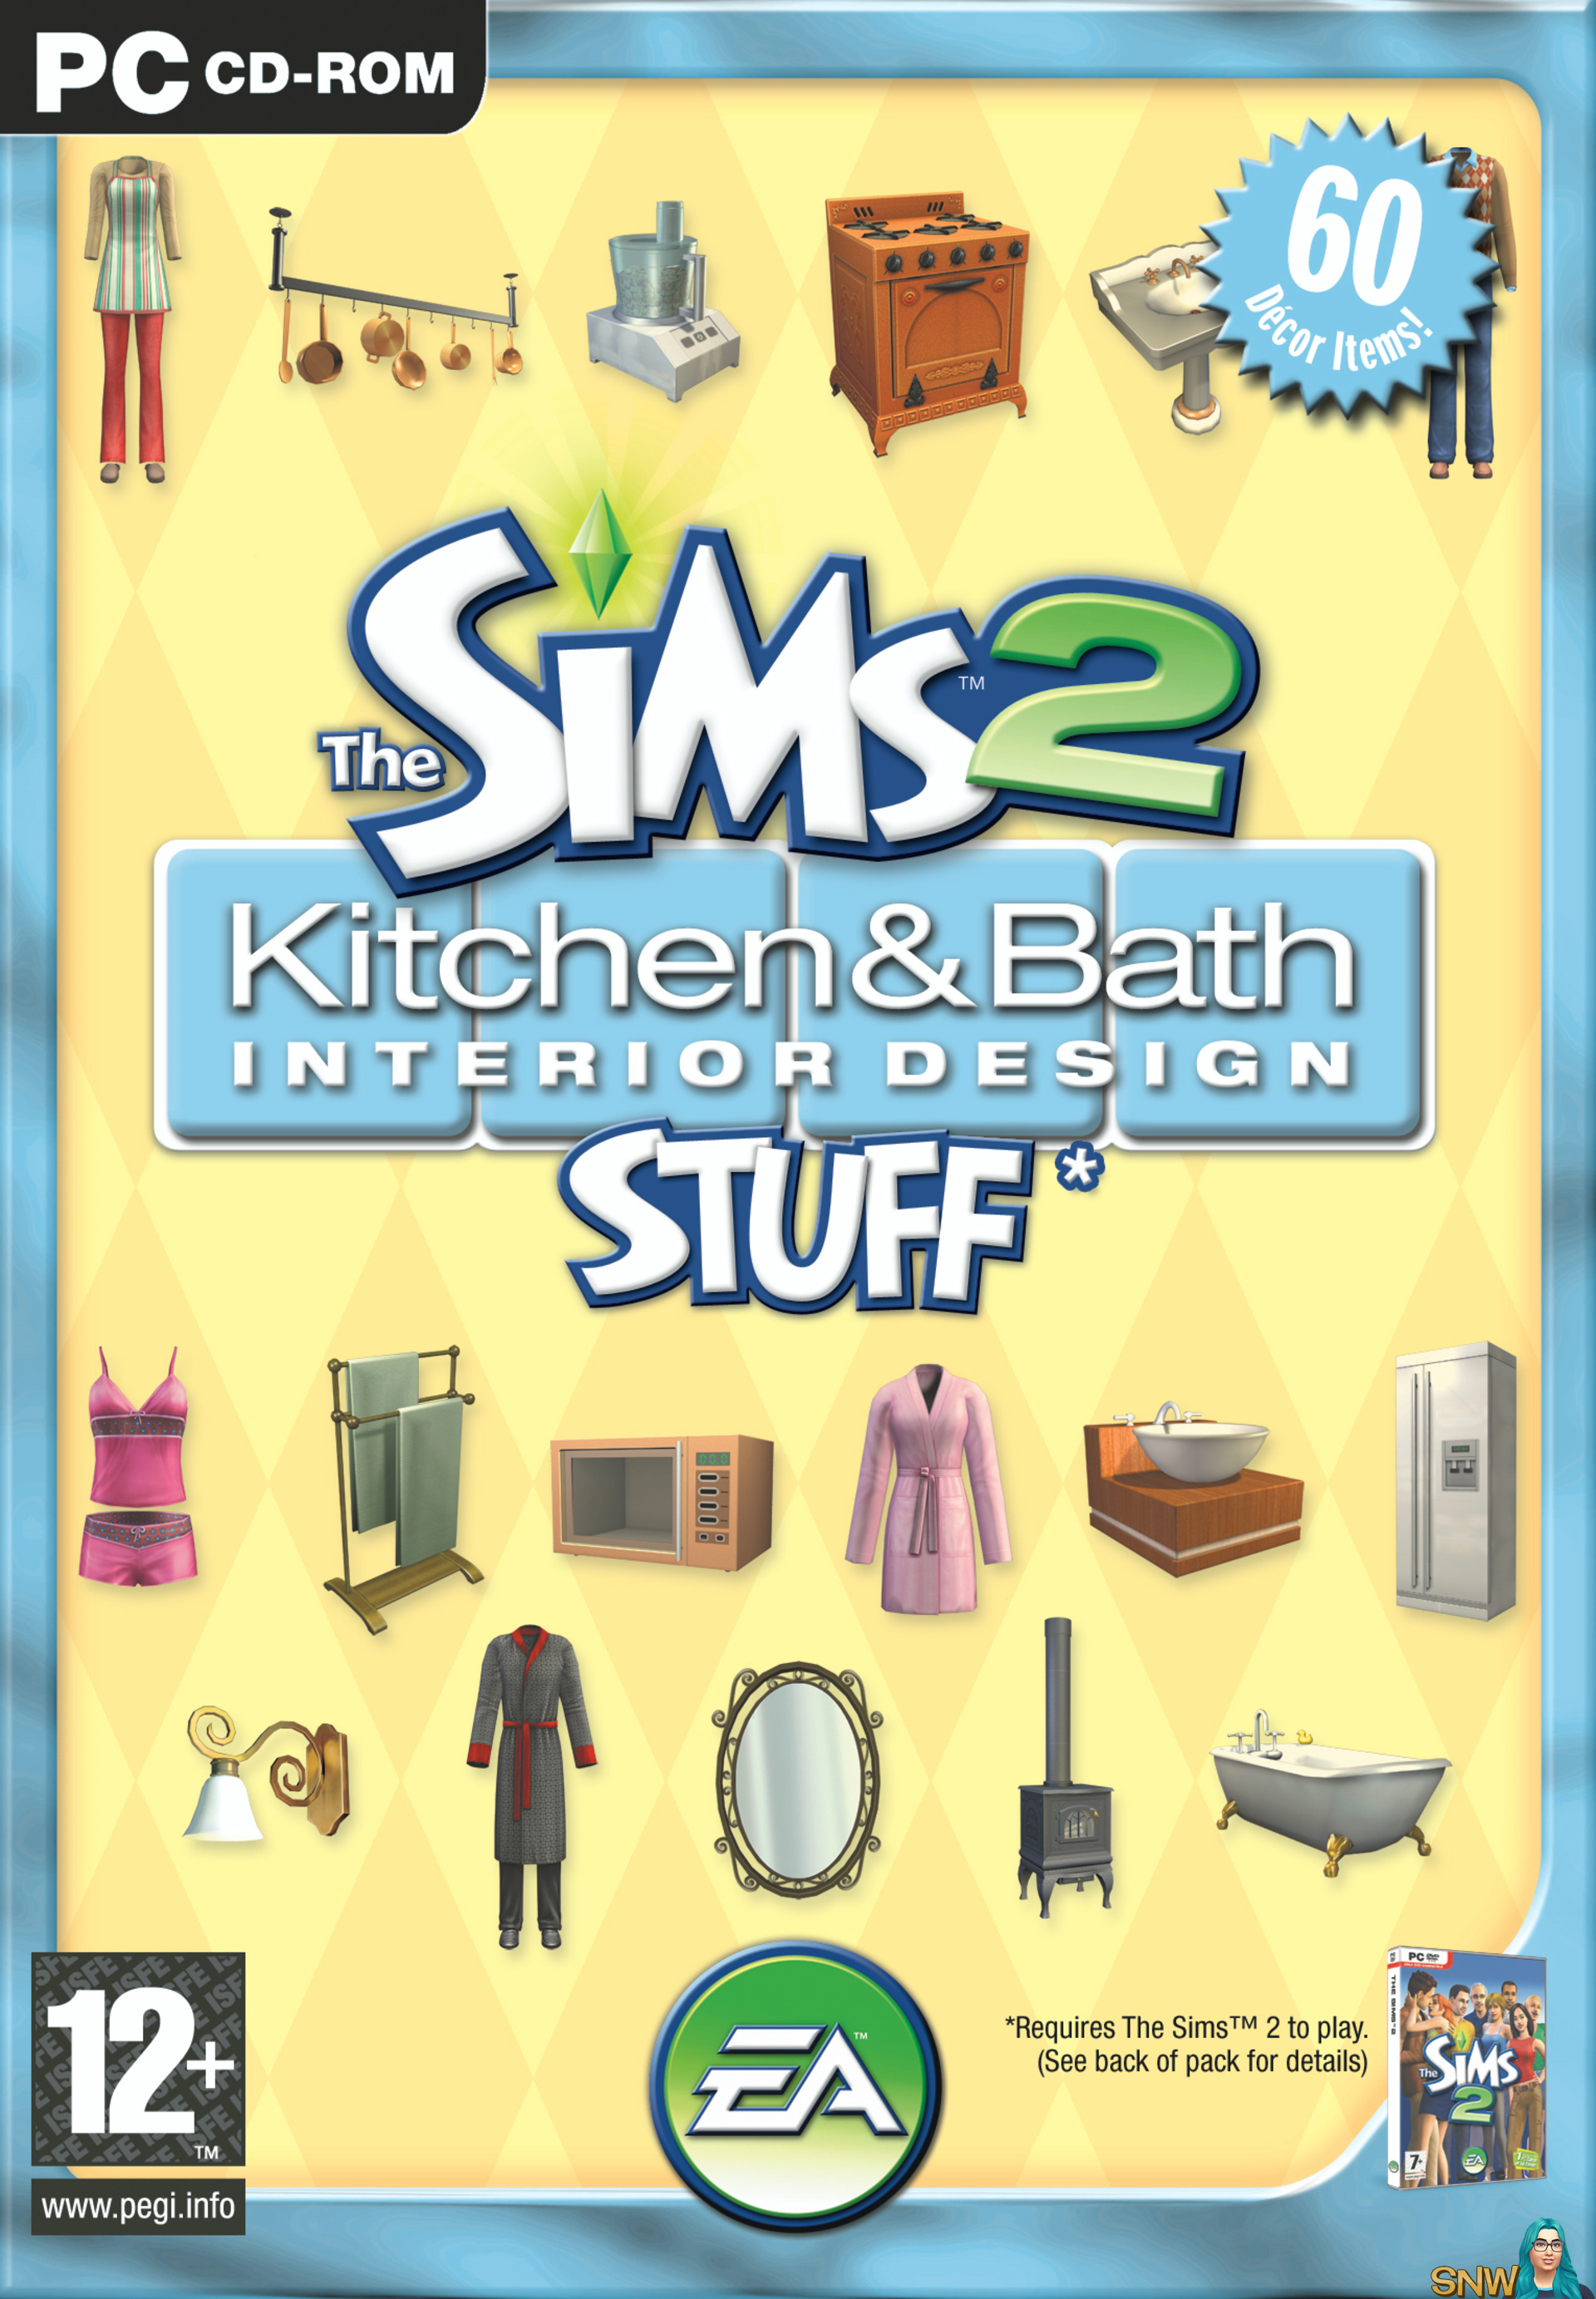 Uncategorized The Sims 2 Kitchen And Bath Interior Design the sims 2 kitchen bath interior design stuff snw simsnetwork com